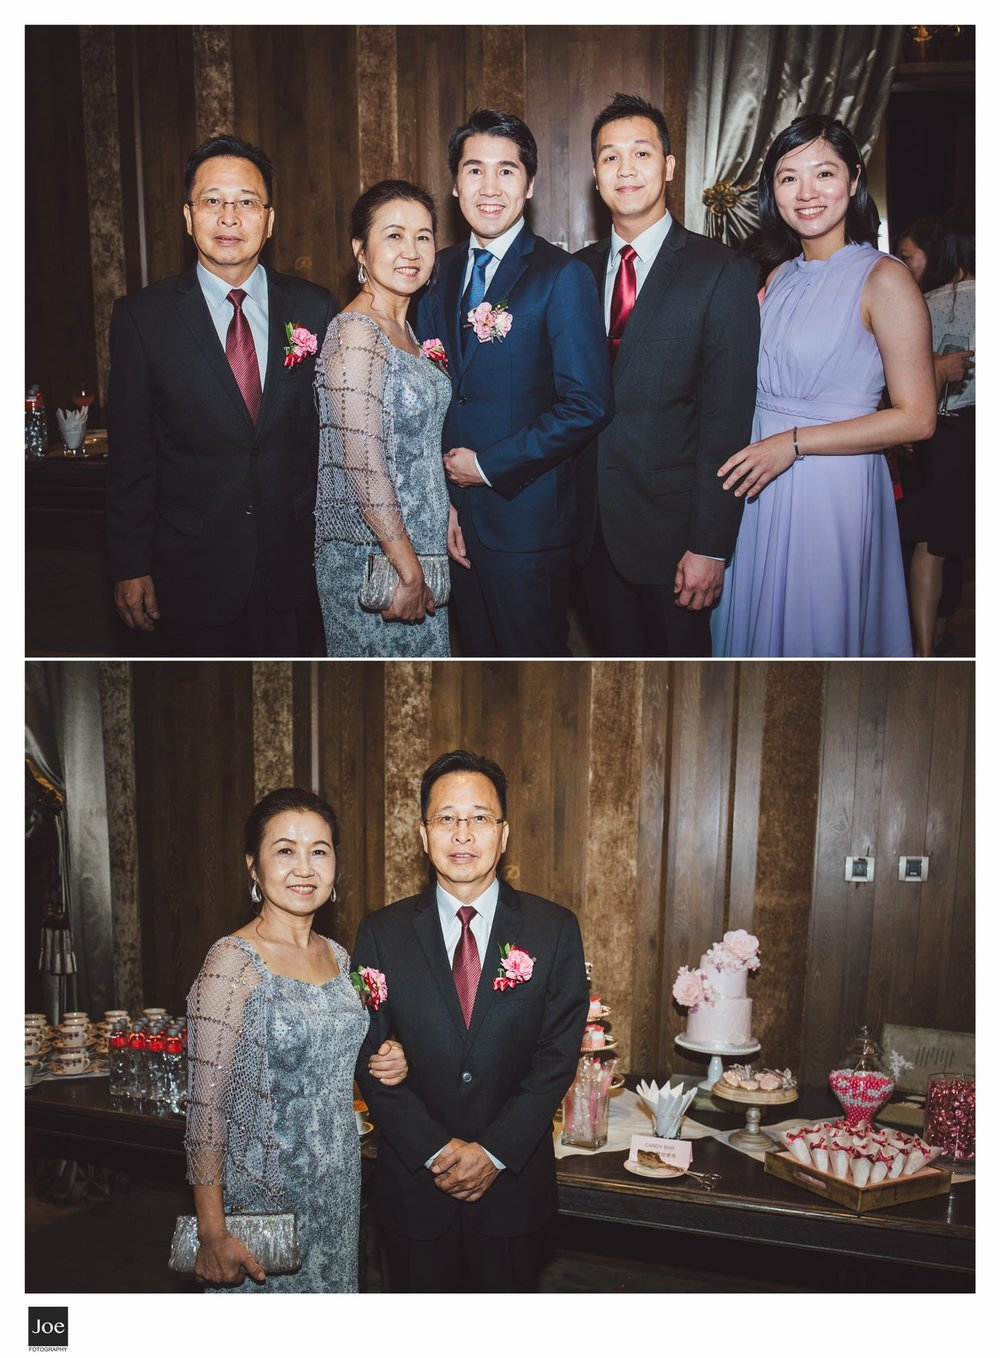 joe-fotography-wedding-photo-palais-de-chine-hotel-016.jpg